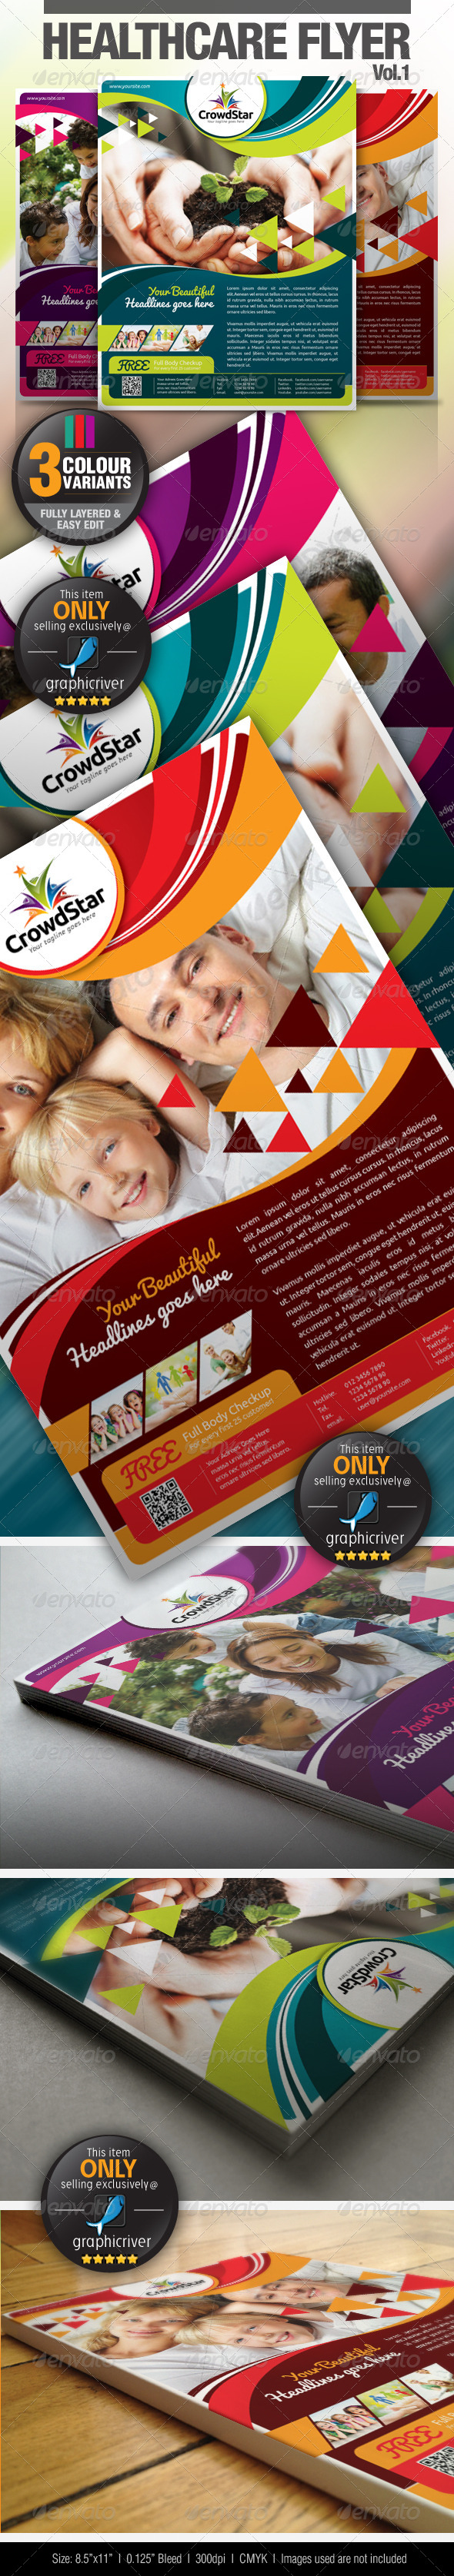 Healthcare Flyer Vol.1 - Corporate Flyers